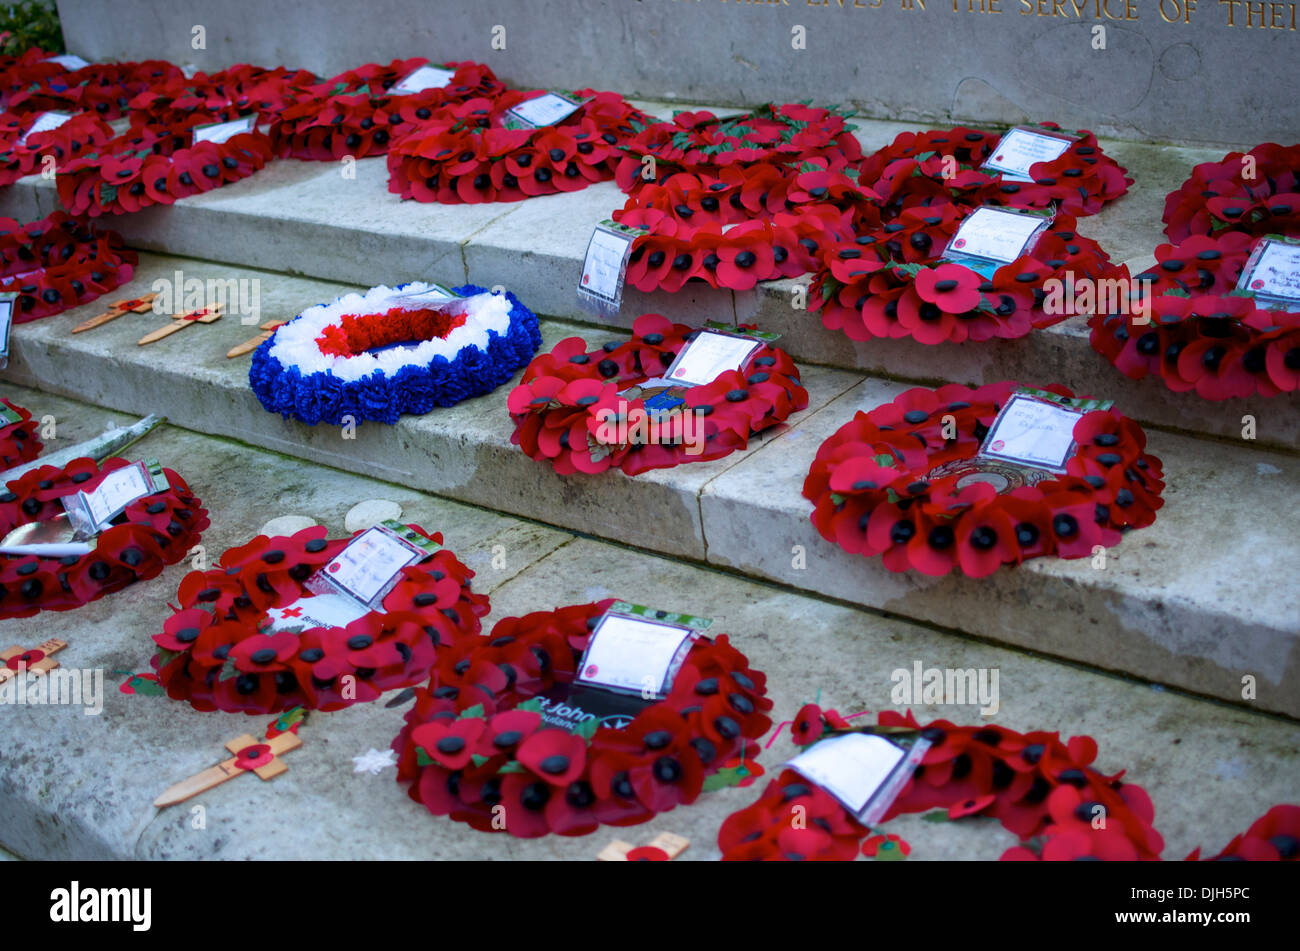 Poppy Wreaths laid on Norwich War Memorial during Remembrance Sunday - Stock Image